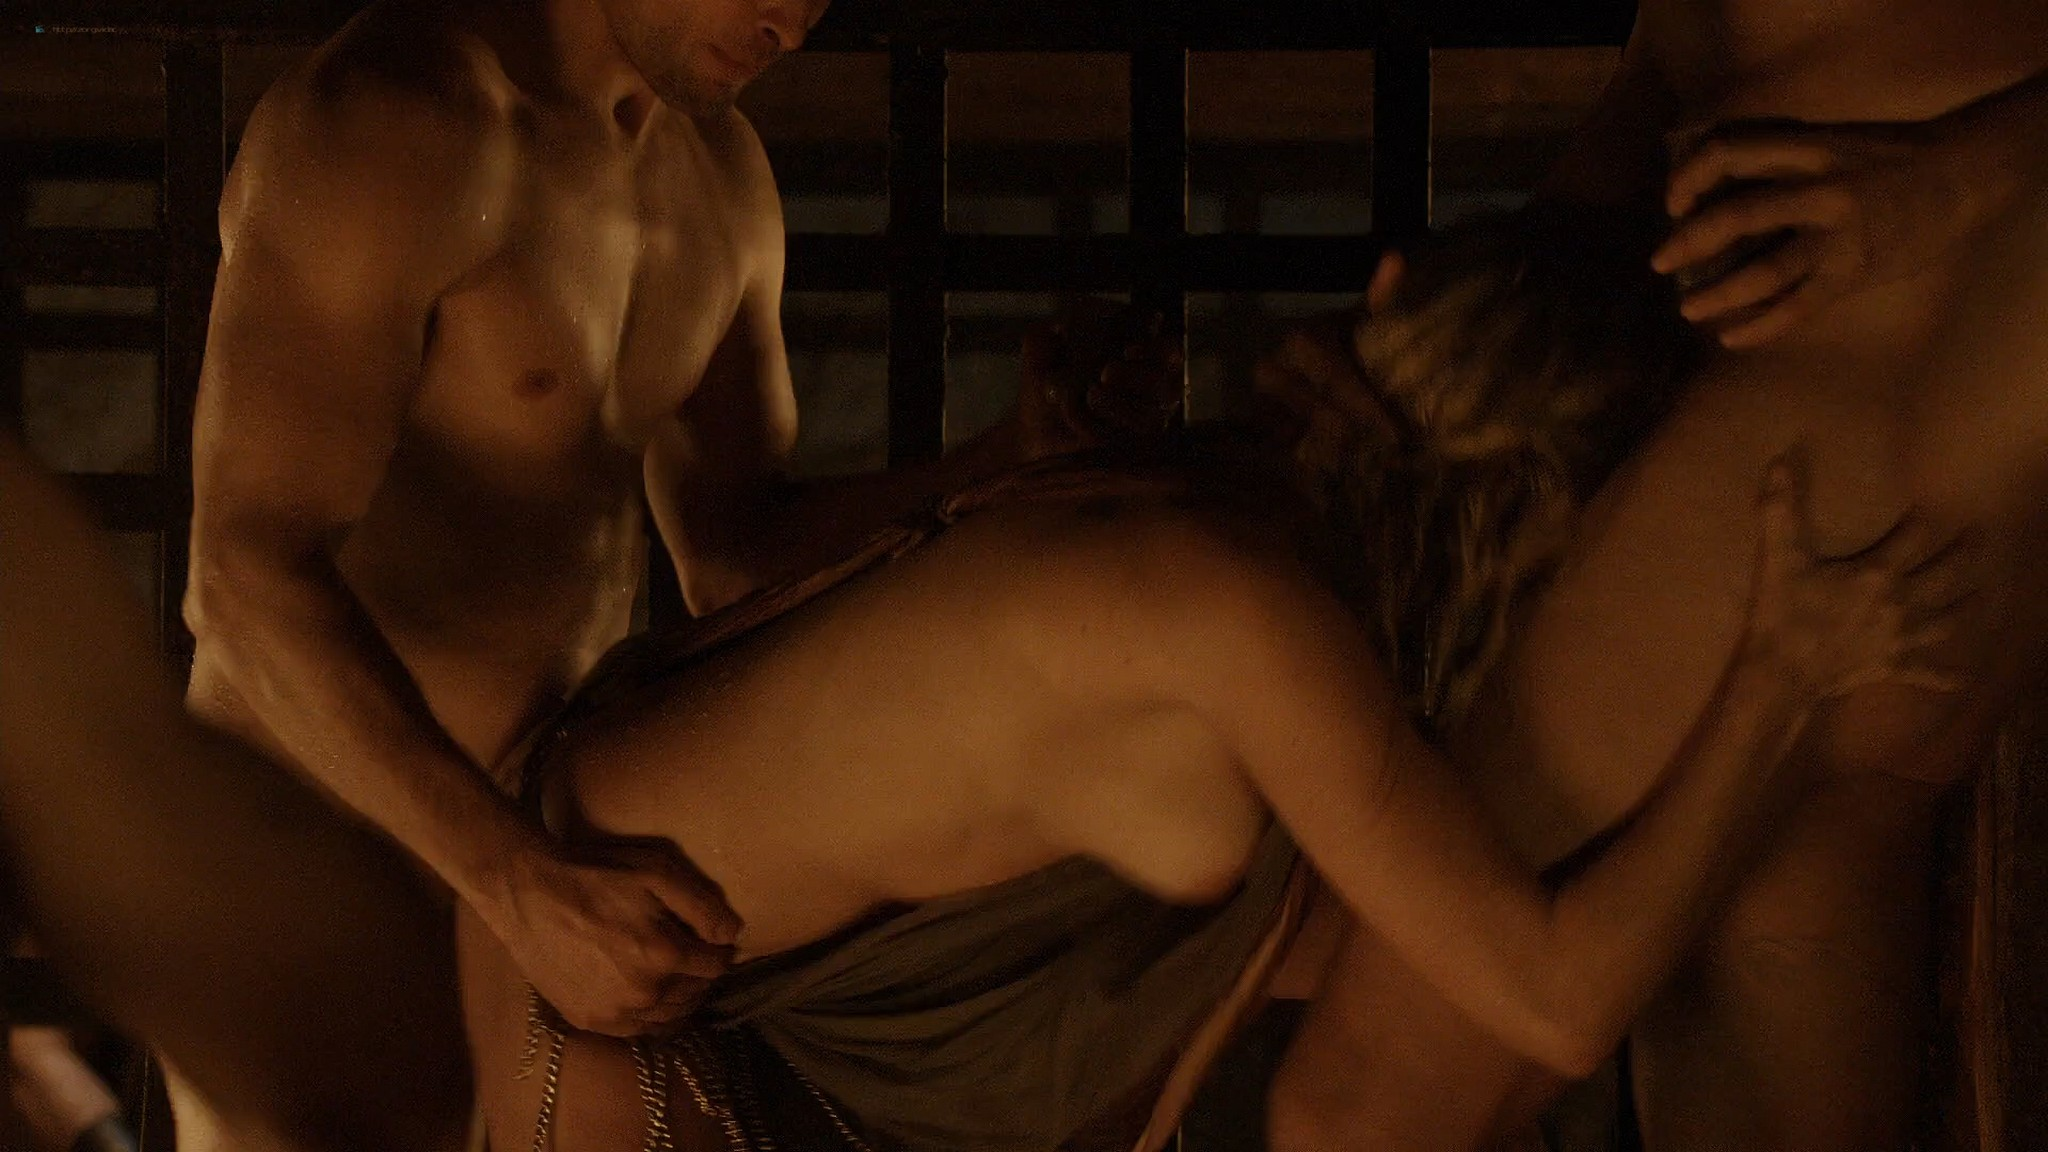 Lucy Lawless nude Lesley-Ann Brandt and other nude sex too - Spartacus (2010) Delicate Things s1e6 HD 1080p BluRay (7)